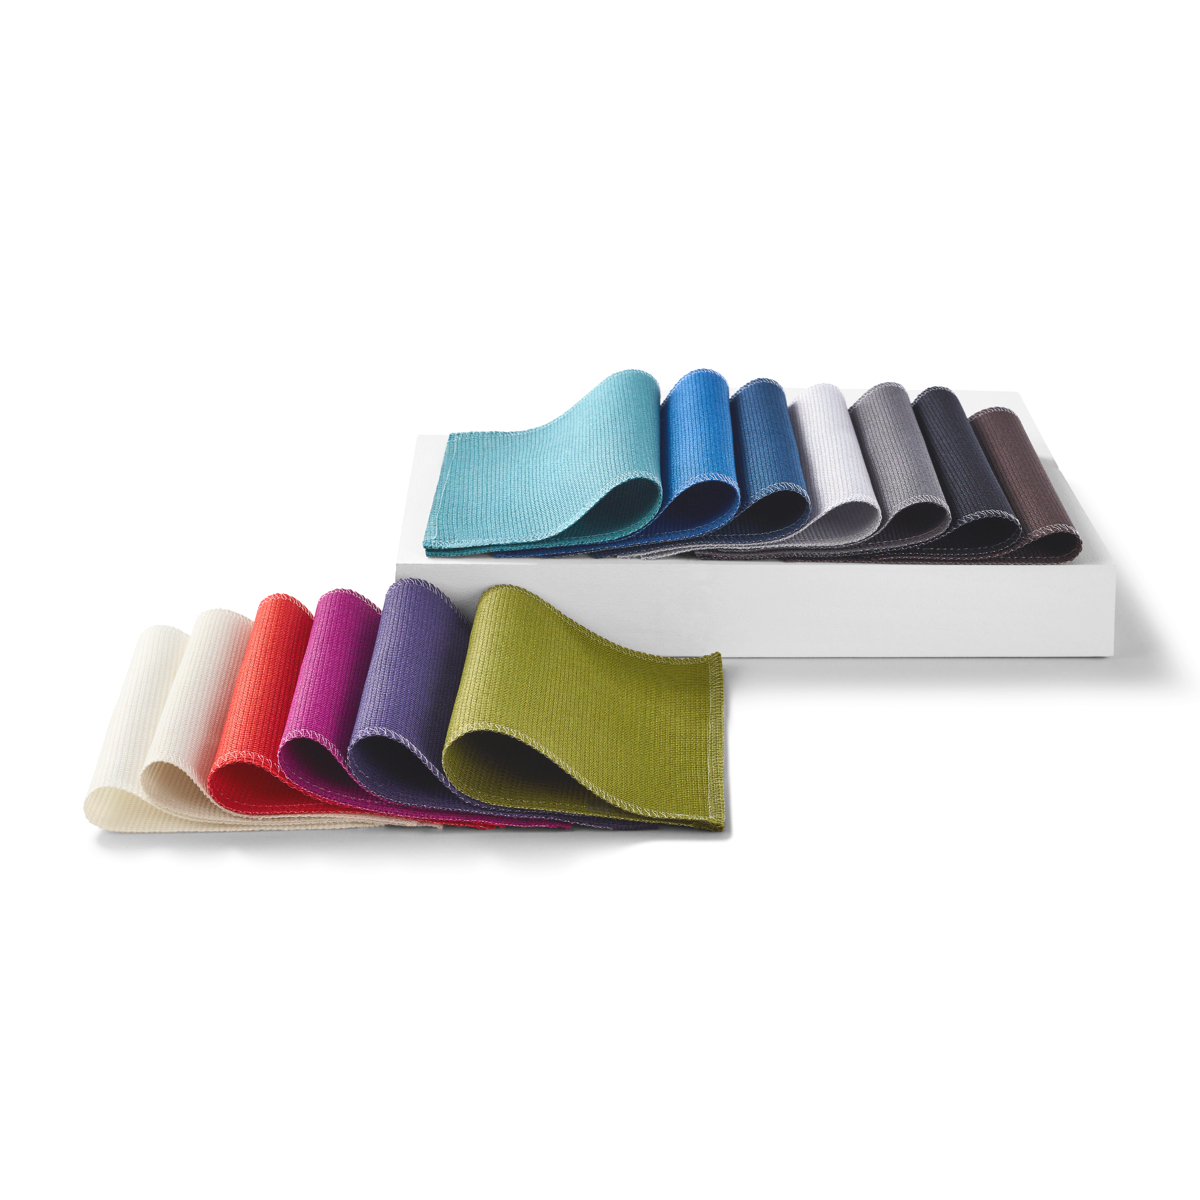 Revit Families - Products - Herman Miller